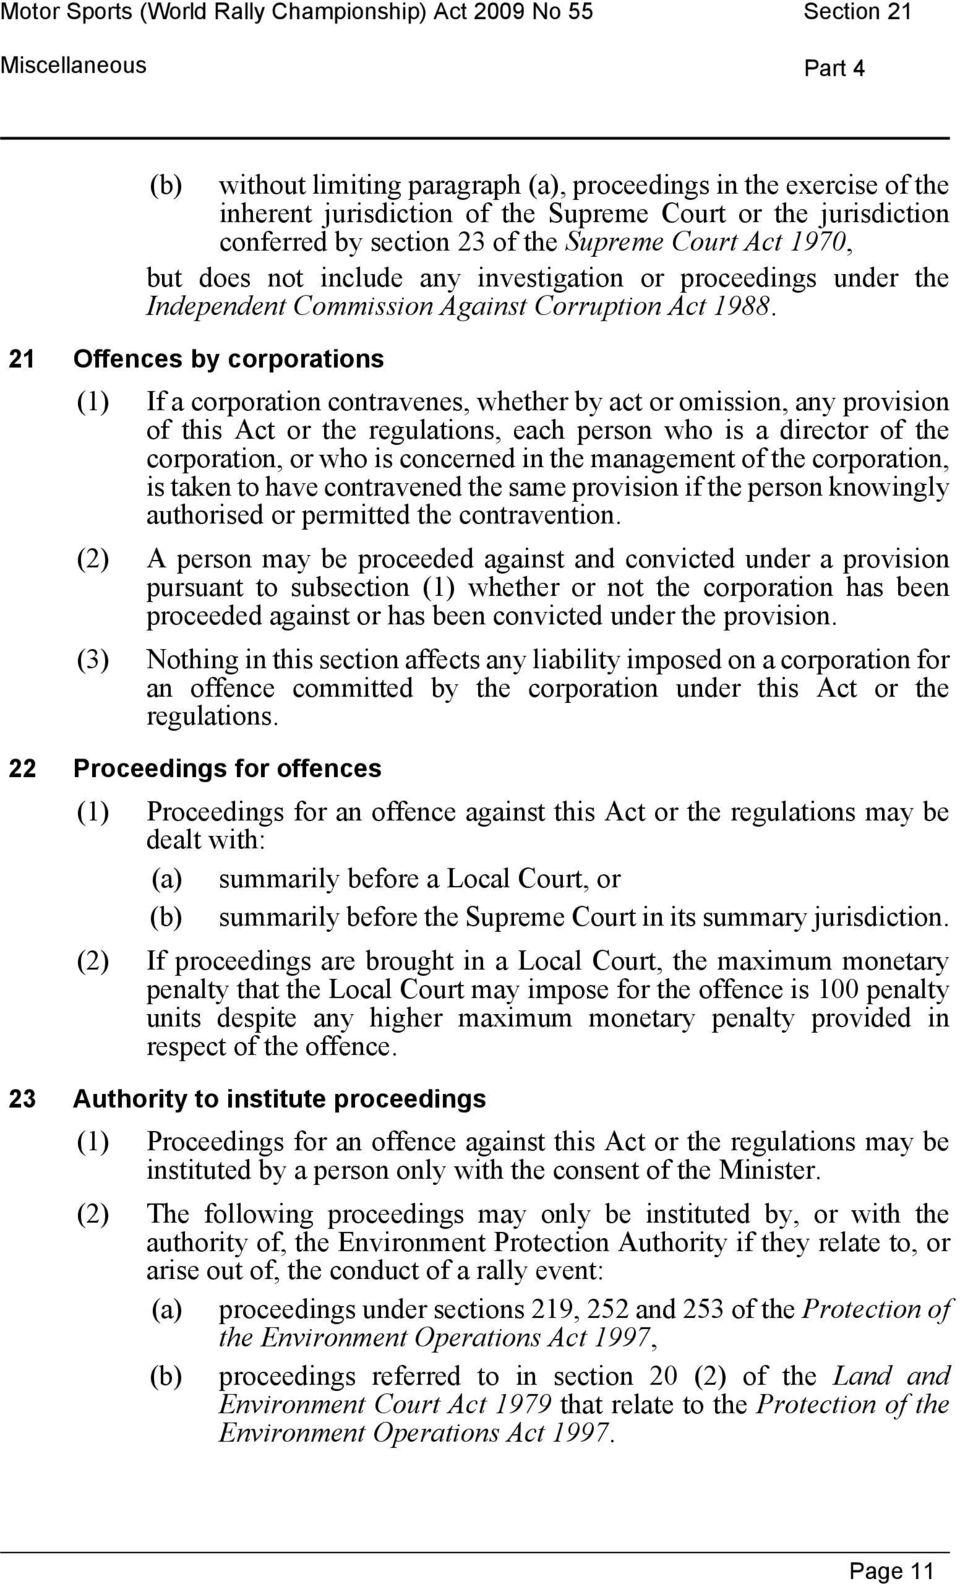 21 Offences by corporations (1) If a corporation contravenes, whether by act or omission, any provision of this Act or the regulations, each person who is a director of the corporation, or who is